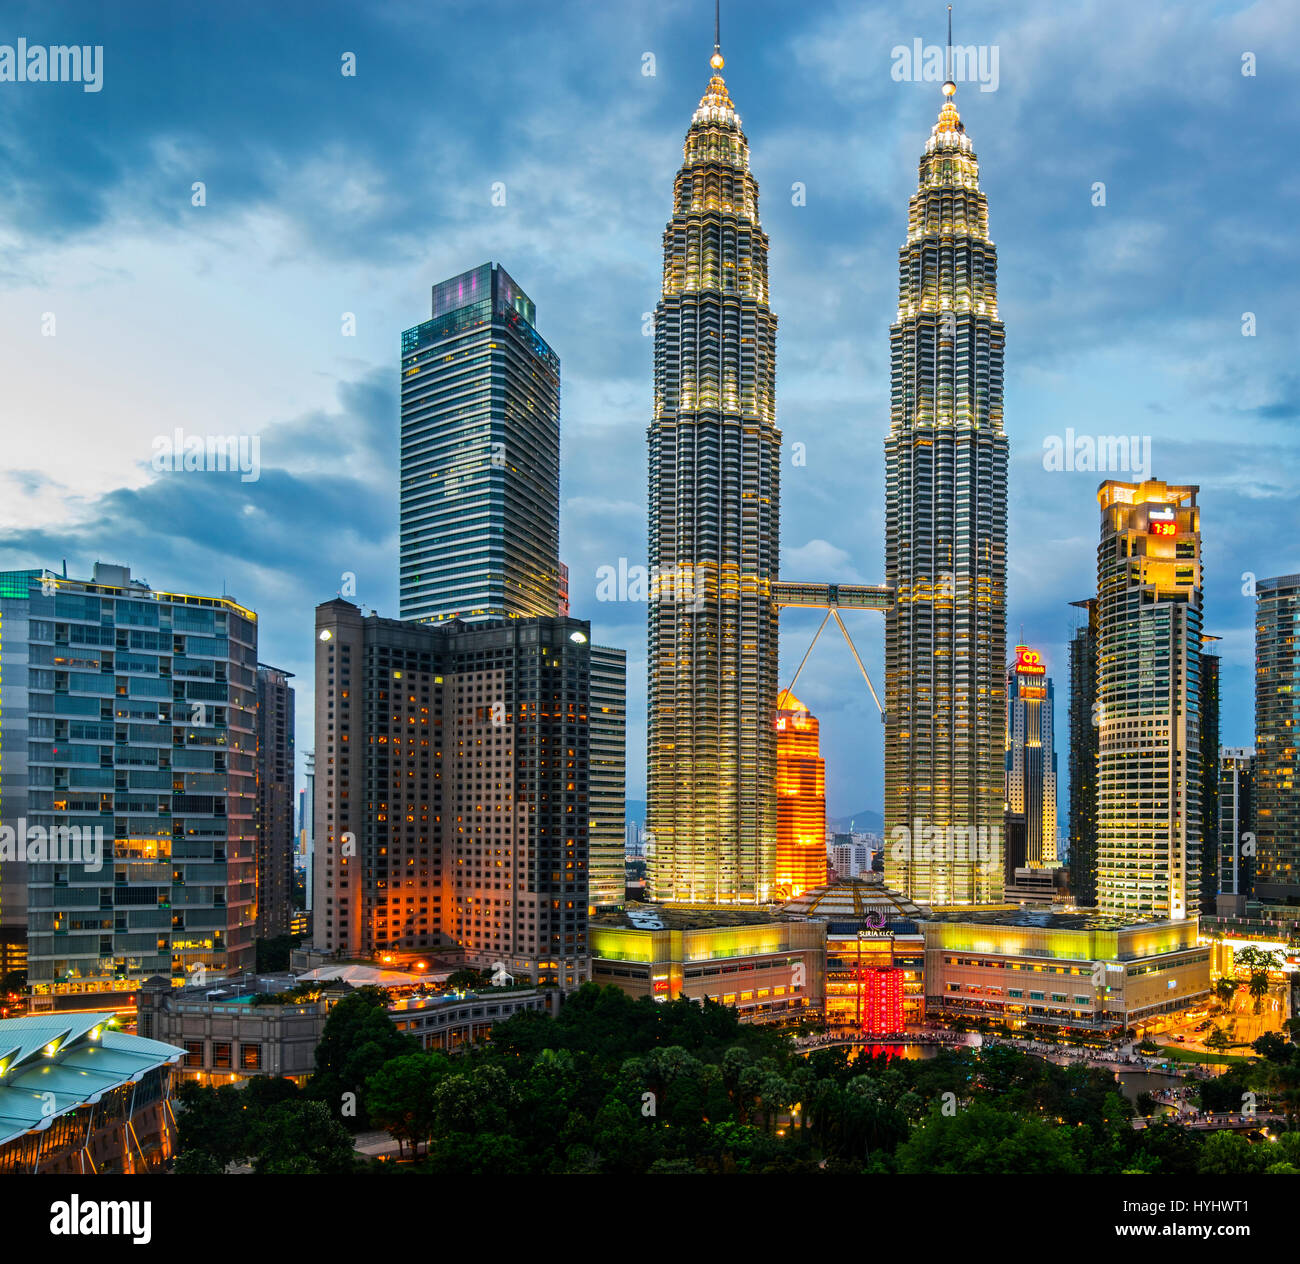 Kuala Lumpur Petronas Twin Towers and City Centre Overview, Malaysia - Stock Image